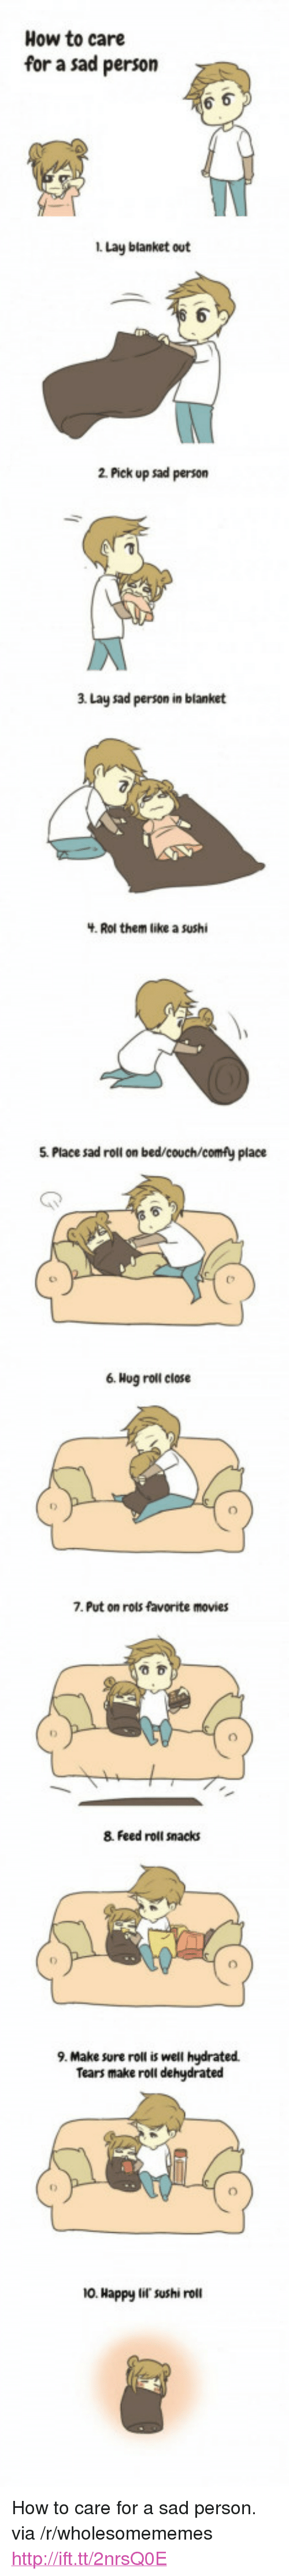 """Movies, Couch, and Happy: How to care  for a sad person  i. Lay blanket out  2 Pick up sad person  3 Lay sad person in blanket  Rol them like a sushi  5. Place sad roll on bed/couch/comfy place  6. Hog roll close  7. Put on rols favorite movies  8 Feed roll snacks  9. Make sure roll is well hydrated  Tears make roll dehudrated  เว  10. Happy lif sushi roll <p>How to care for a sad person. via /r/wholesomememes <a href=""""http://ift.tt/2nrsQ0E"""">http://ift.tt/2nrsQ0E</a></p>"""